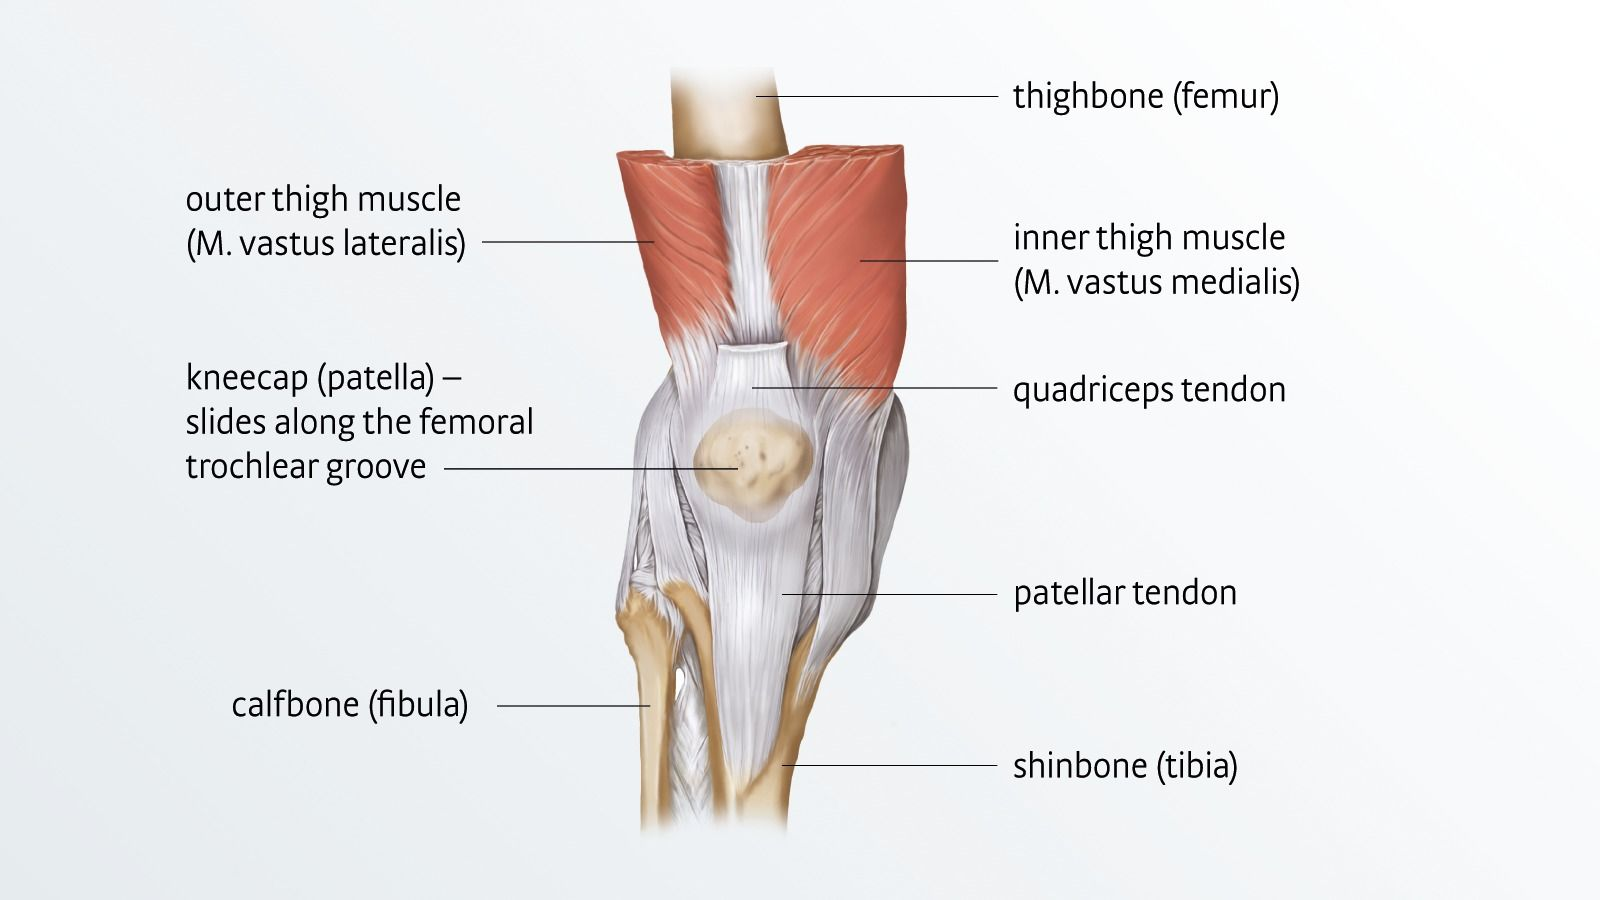 Patellar tendinopathy | Irritation of the patellar tendon